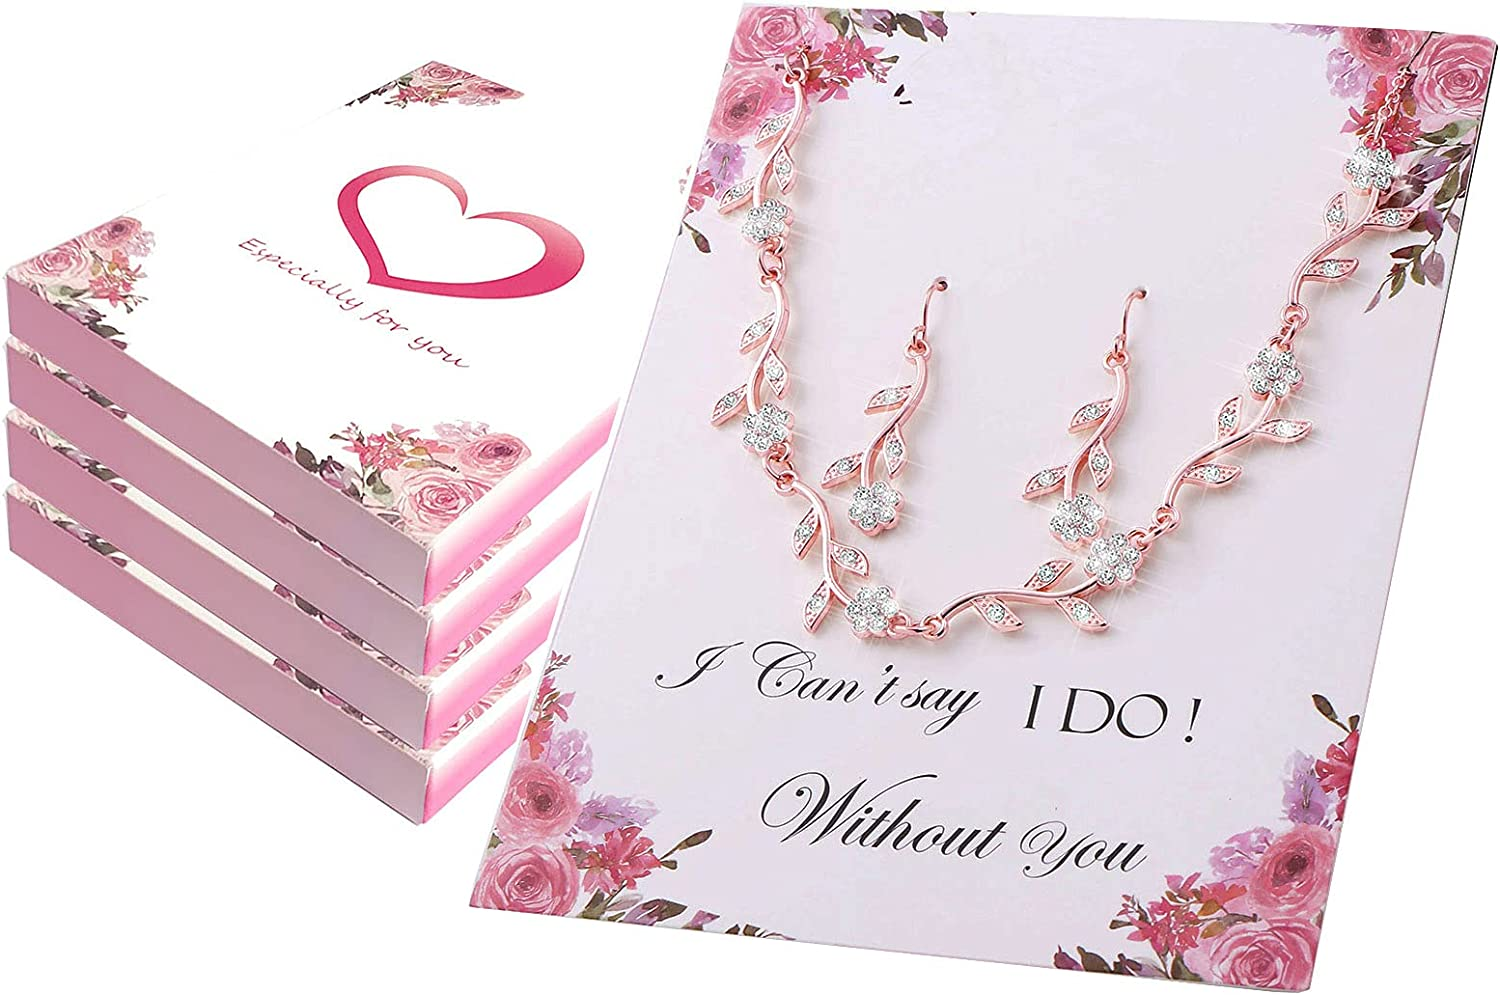 Bridesmaid Gift Jewelry Sets of 1 4 6 7 8 for Wedding,Pave Crystal Simulated Diamond Leaf Flower Jewelry Set for Bridesmaid